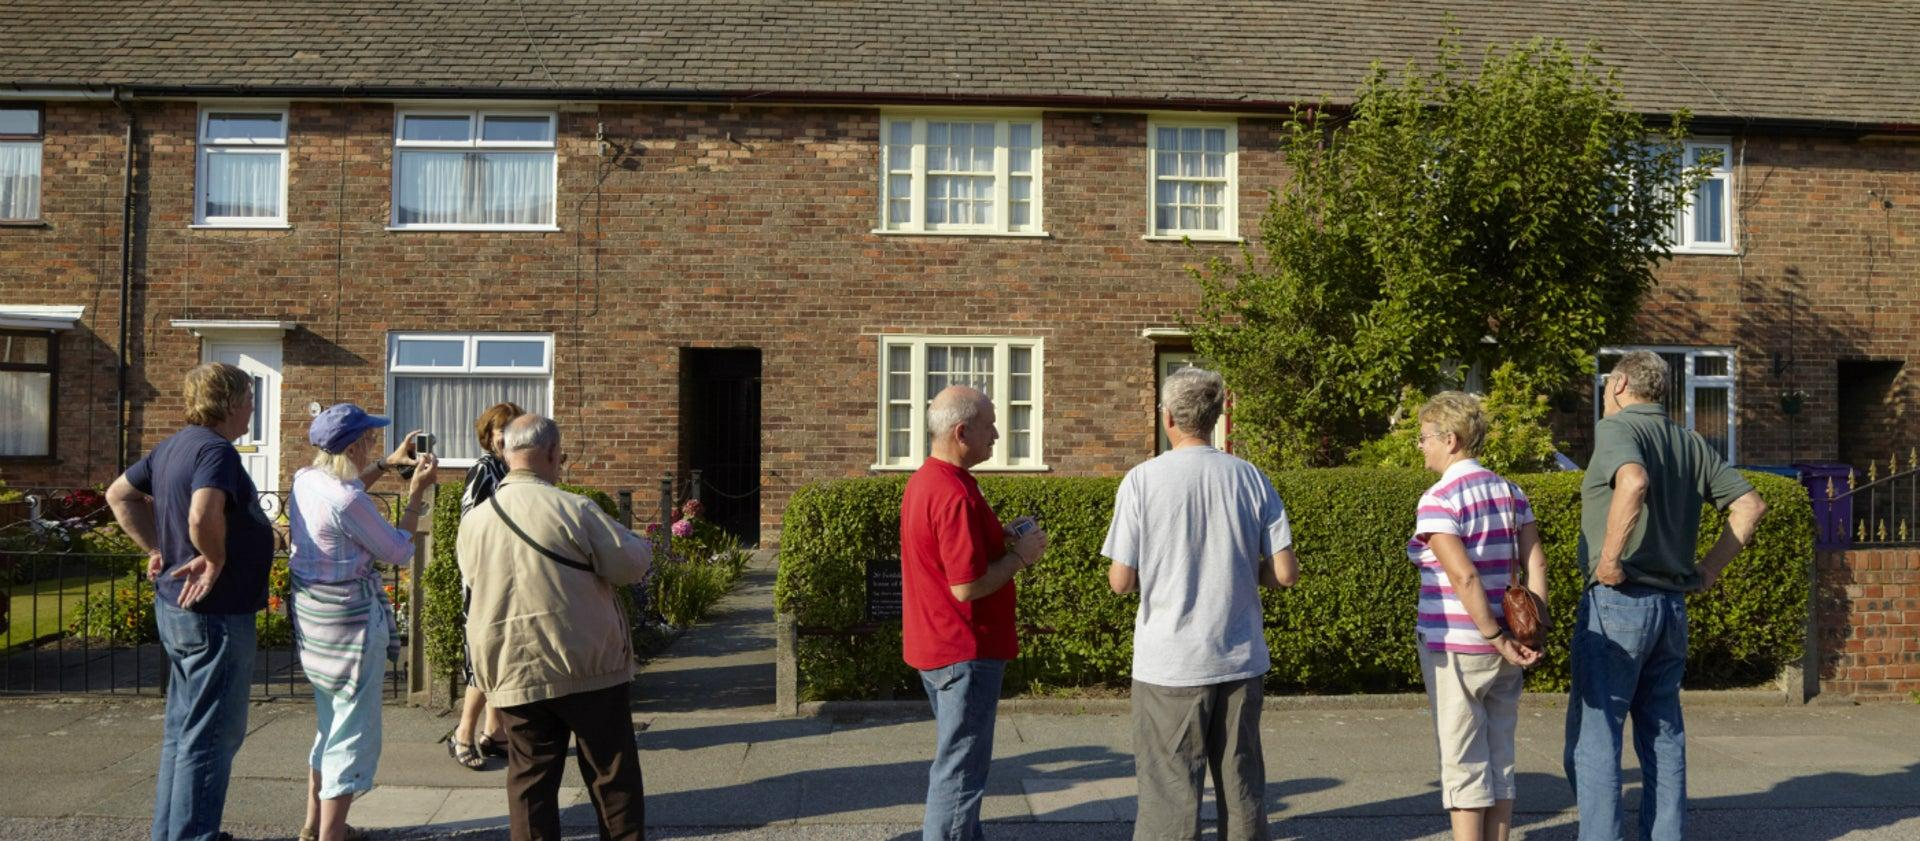 Beatles' Childhood Homes Tour - Liverpool South Parkway pickup - 23 & 24 May 2020